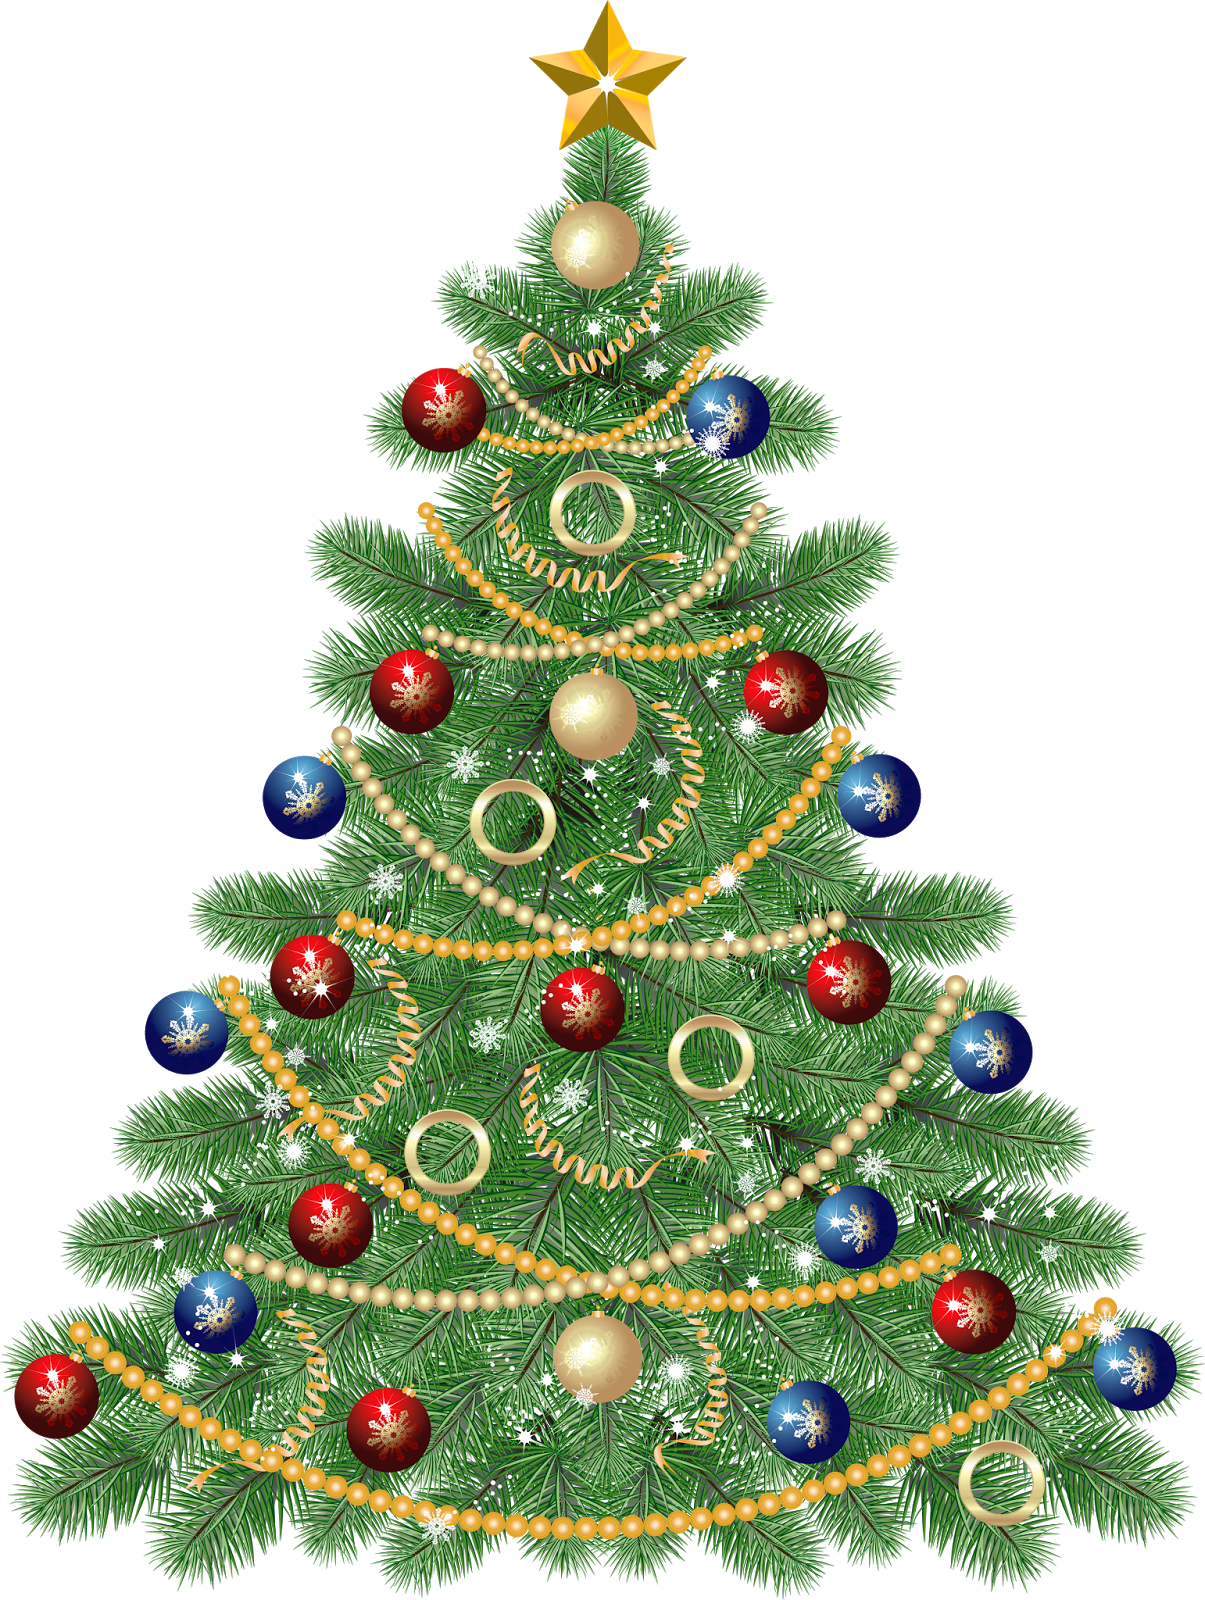 christmas animated clipart free download - photo #20